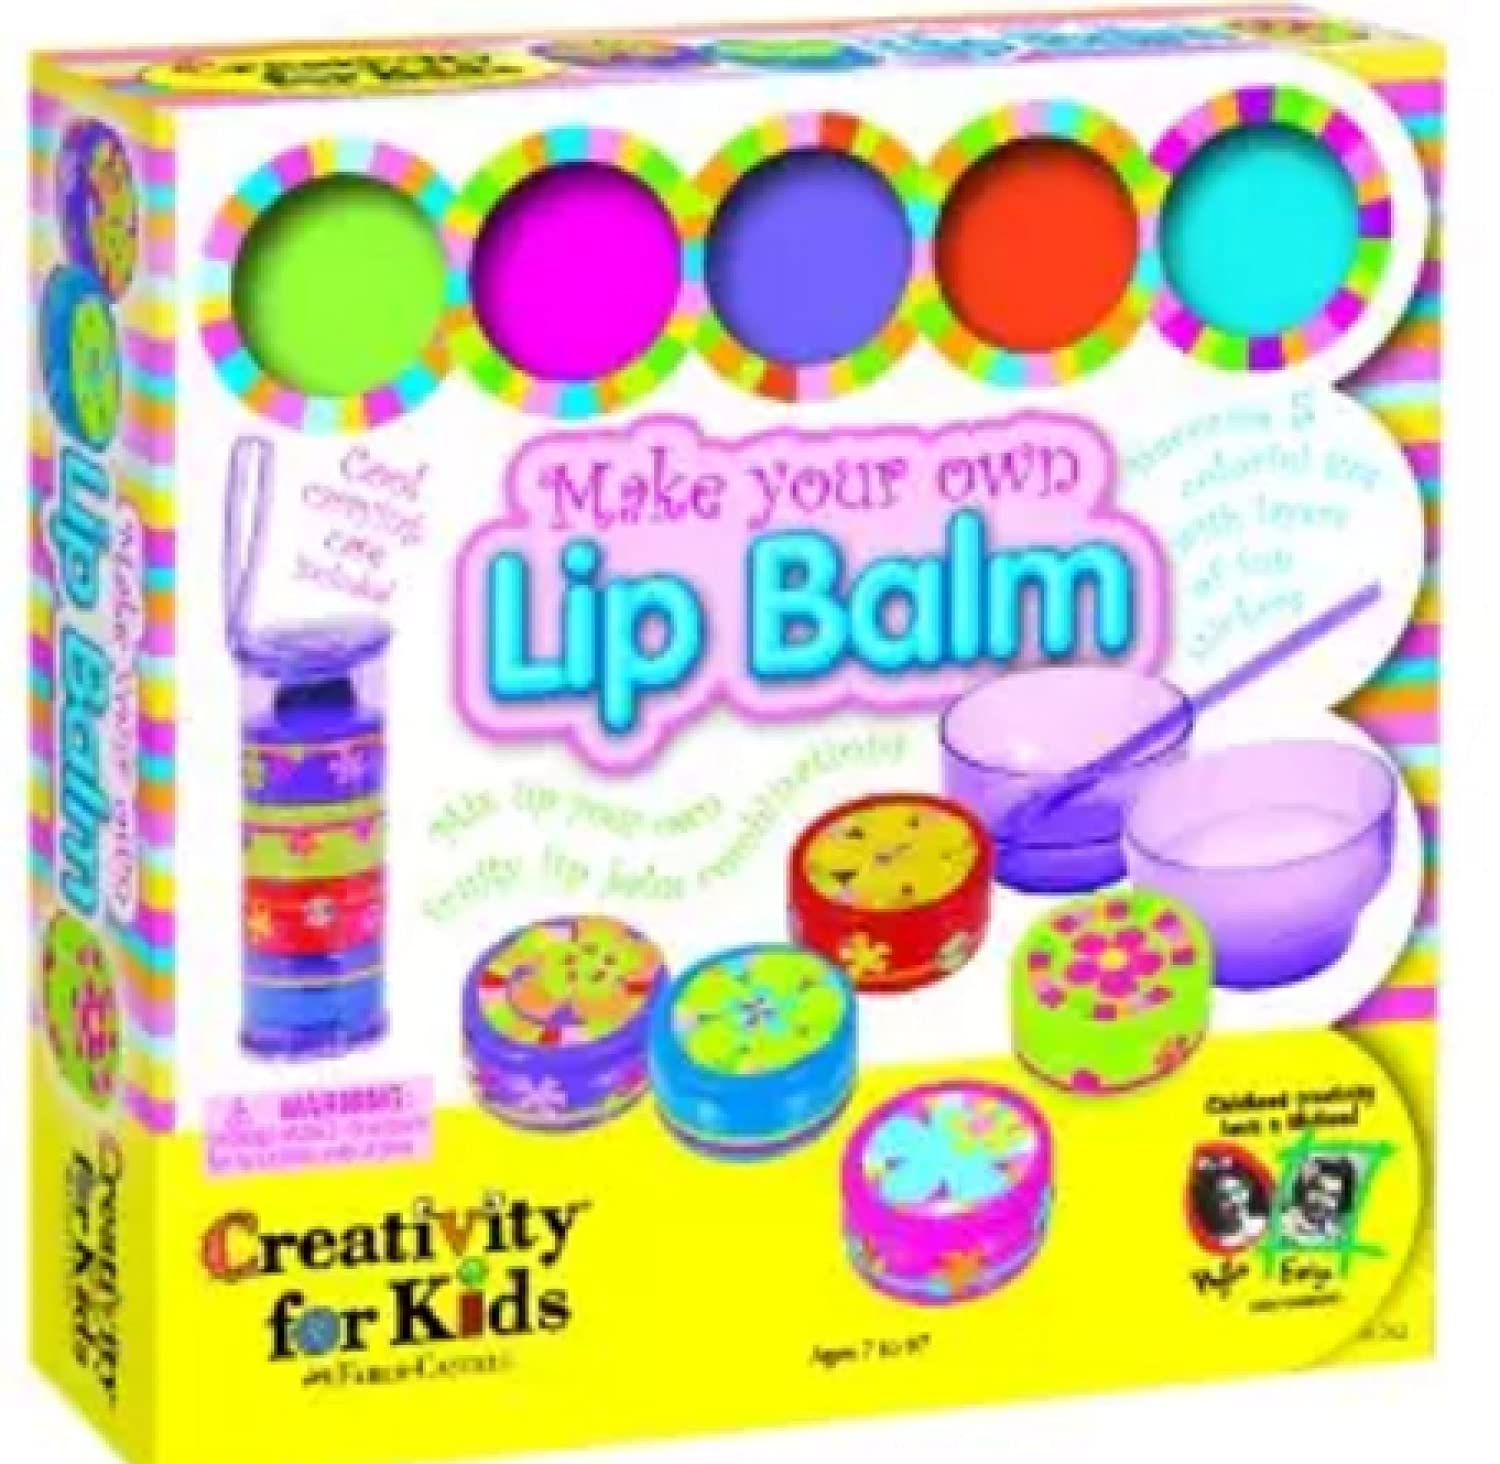 Creativity for Kids 202301 Make Your Own Lip Balm Aktivit-t [並行輸入品] B01DTEEC48